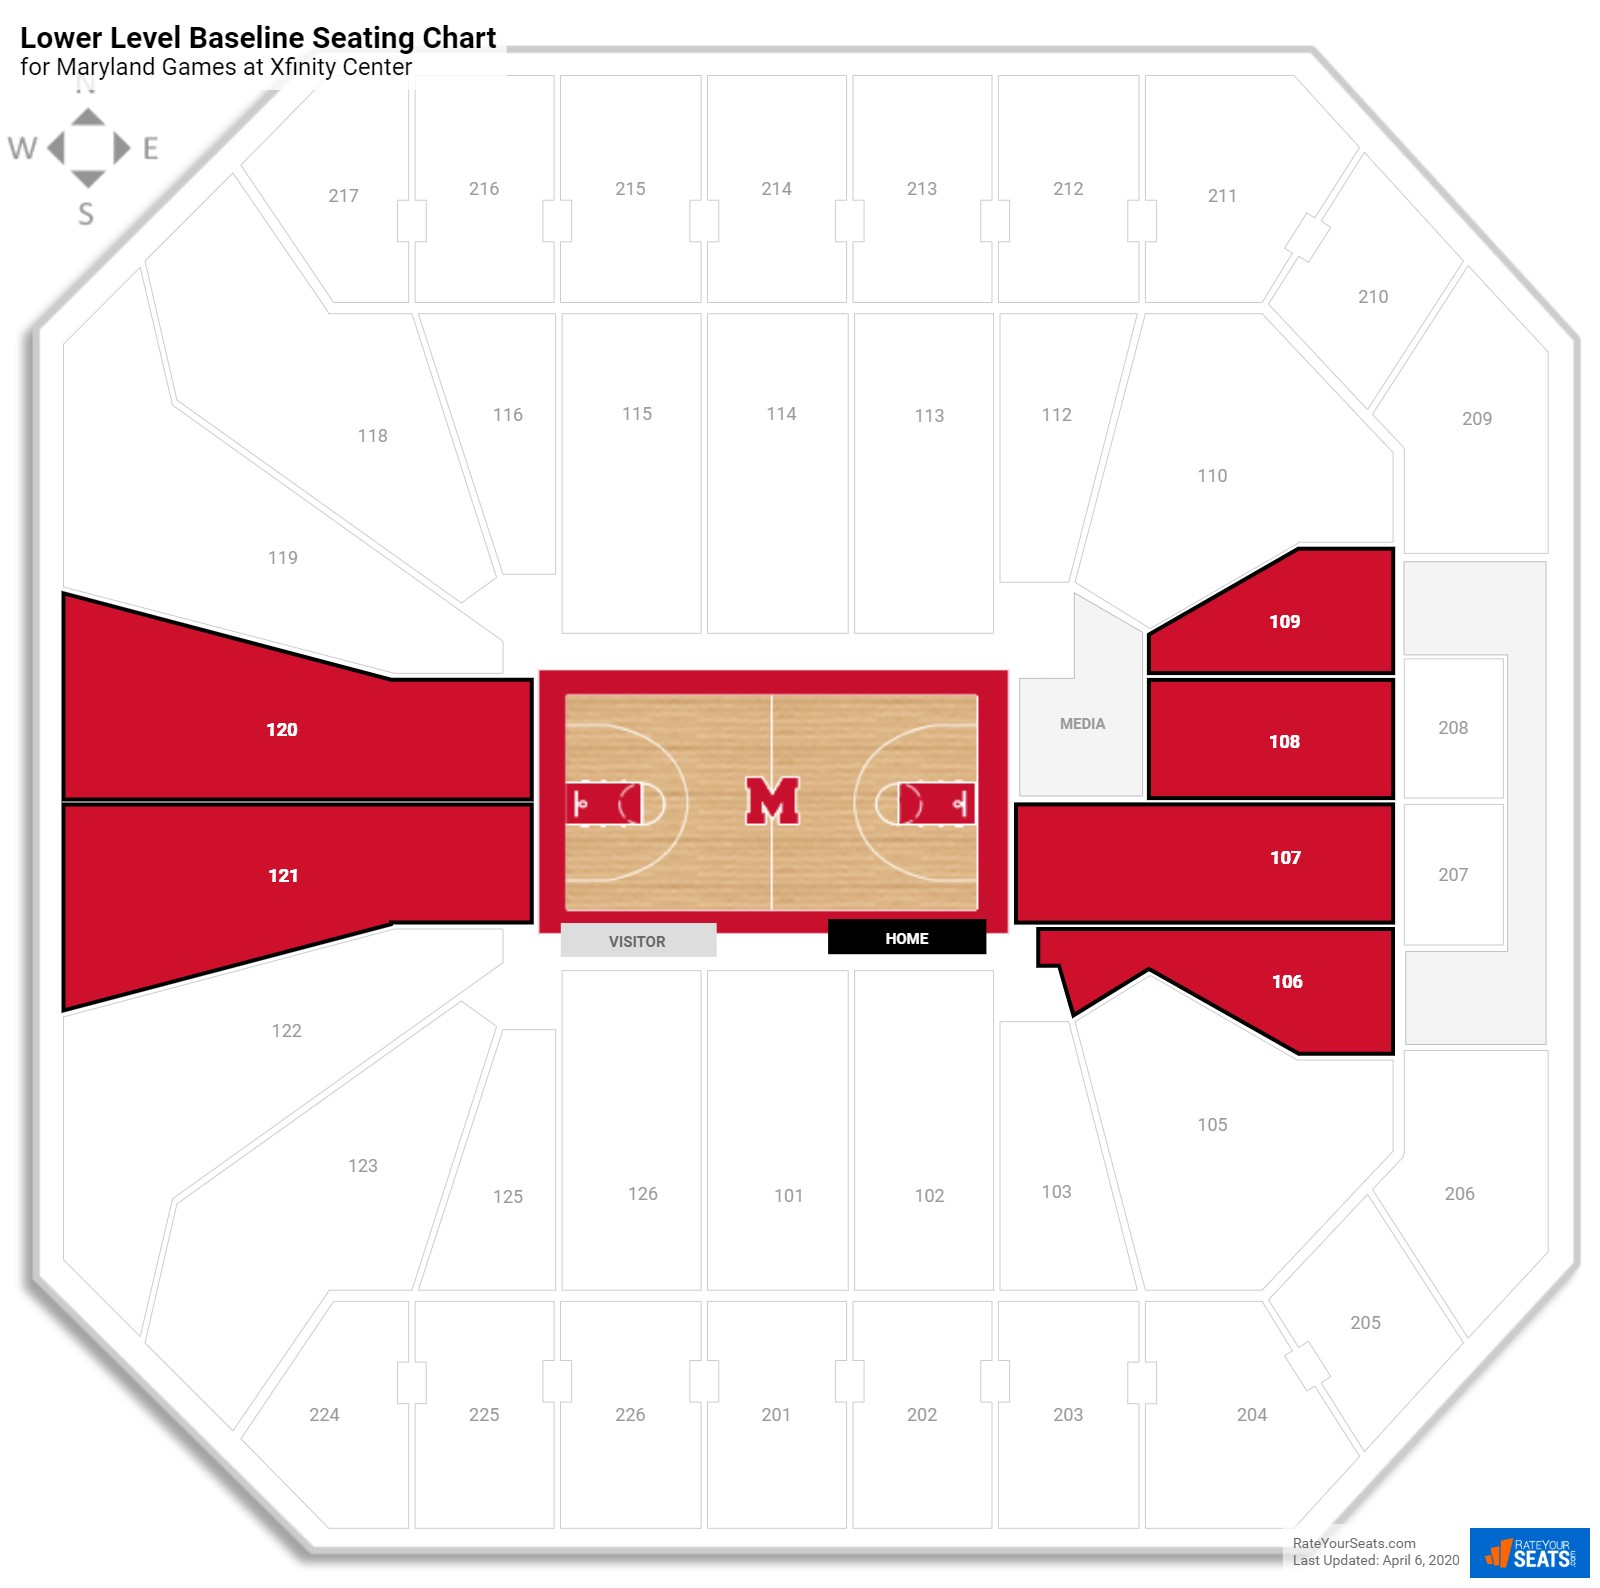 Comcast Center (Maryland) Seating Guide